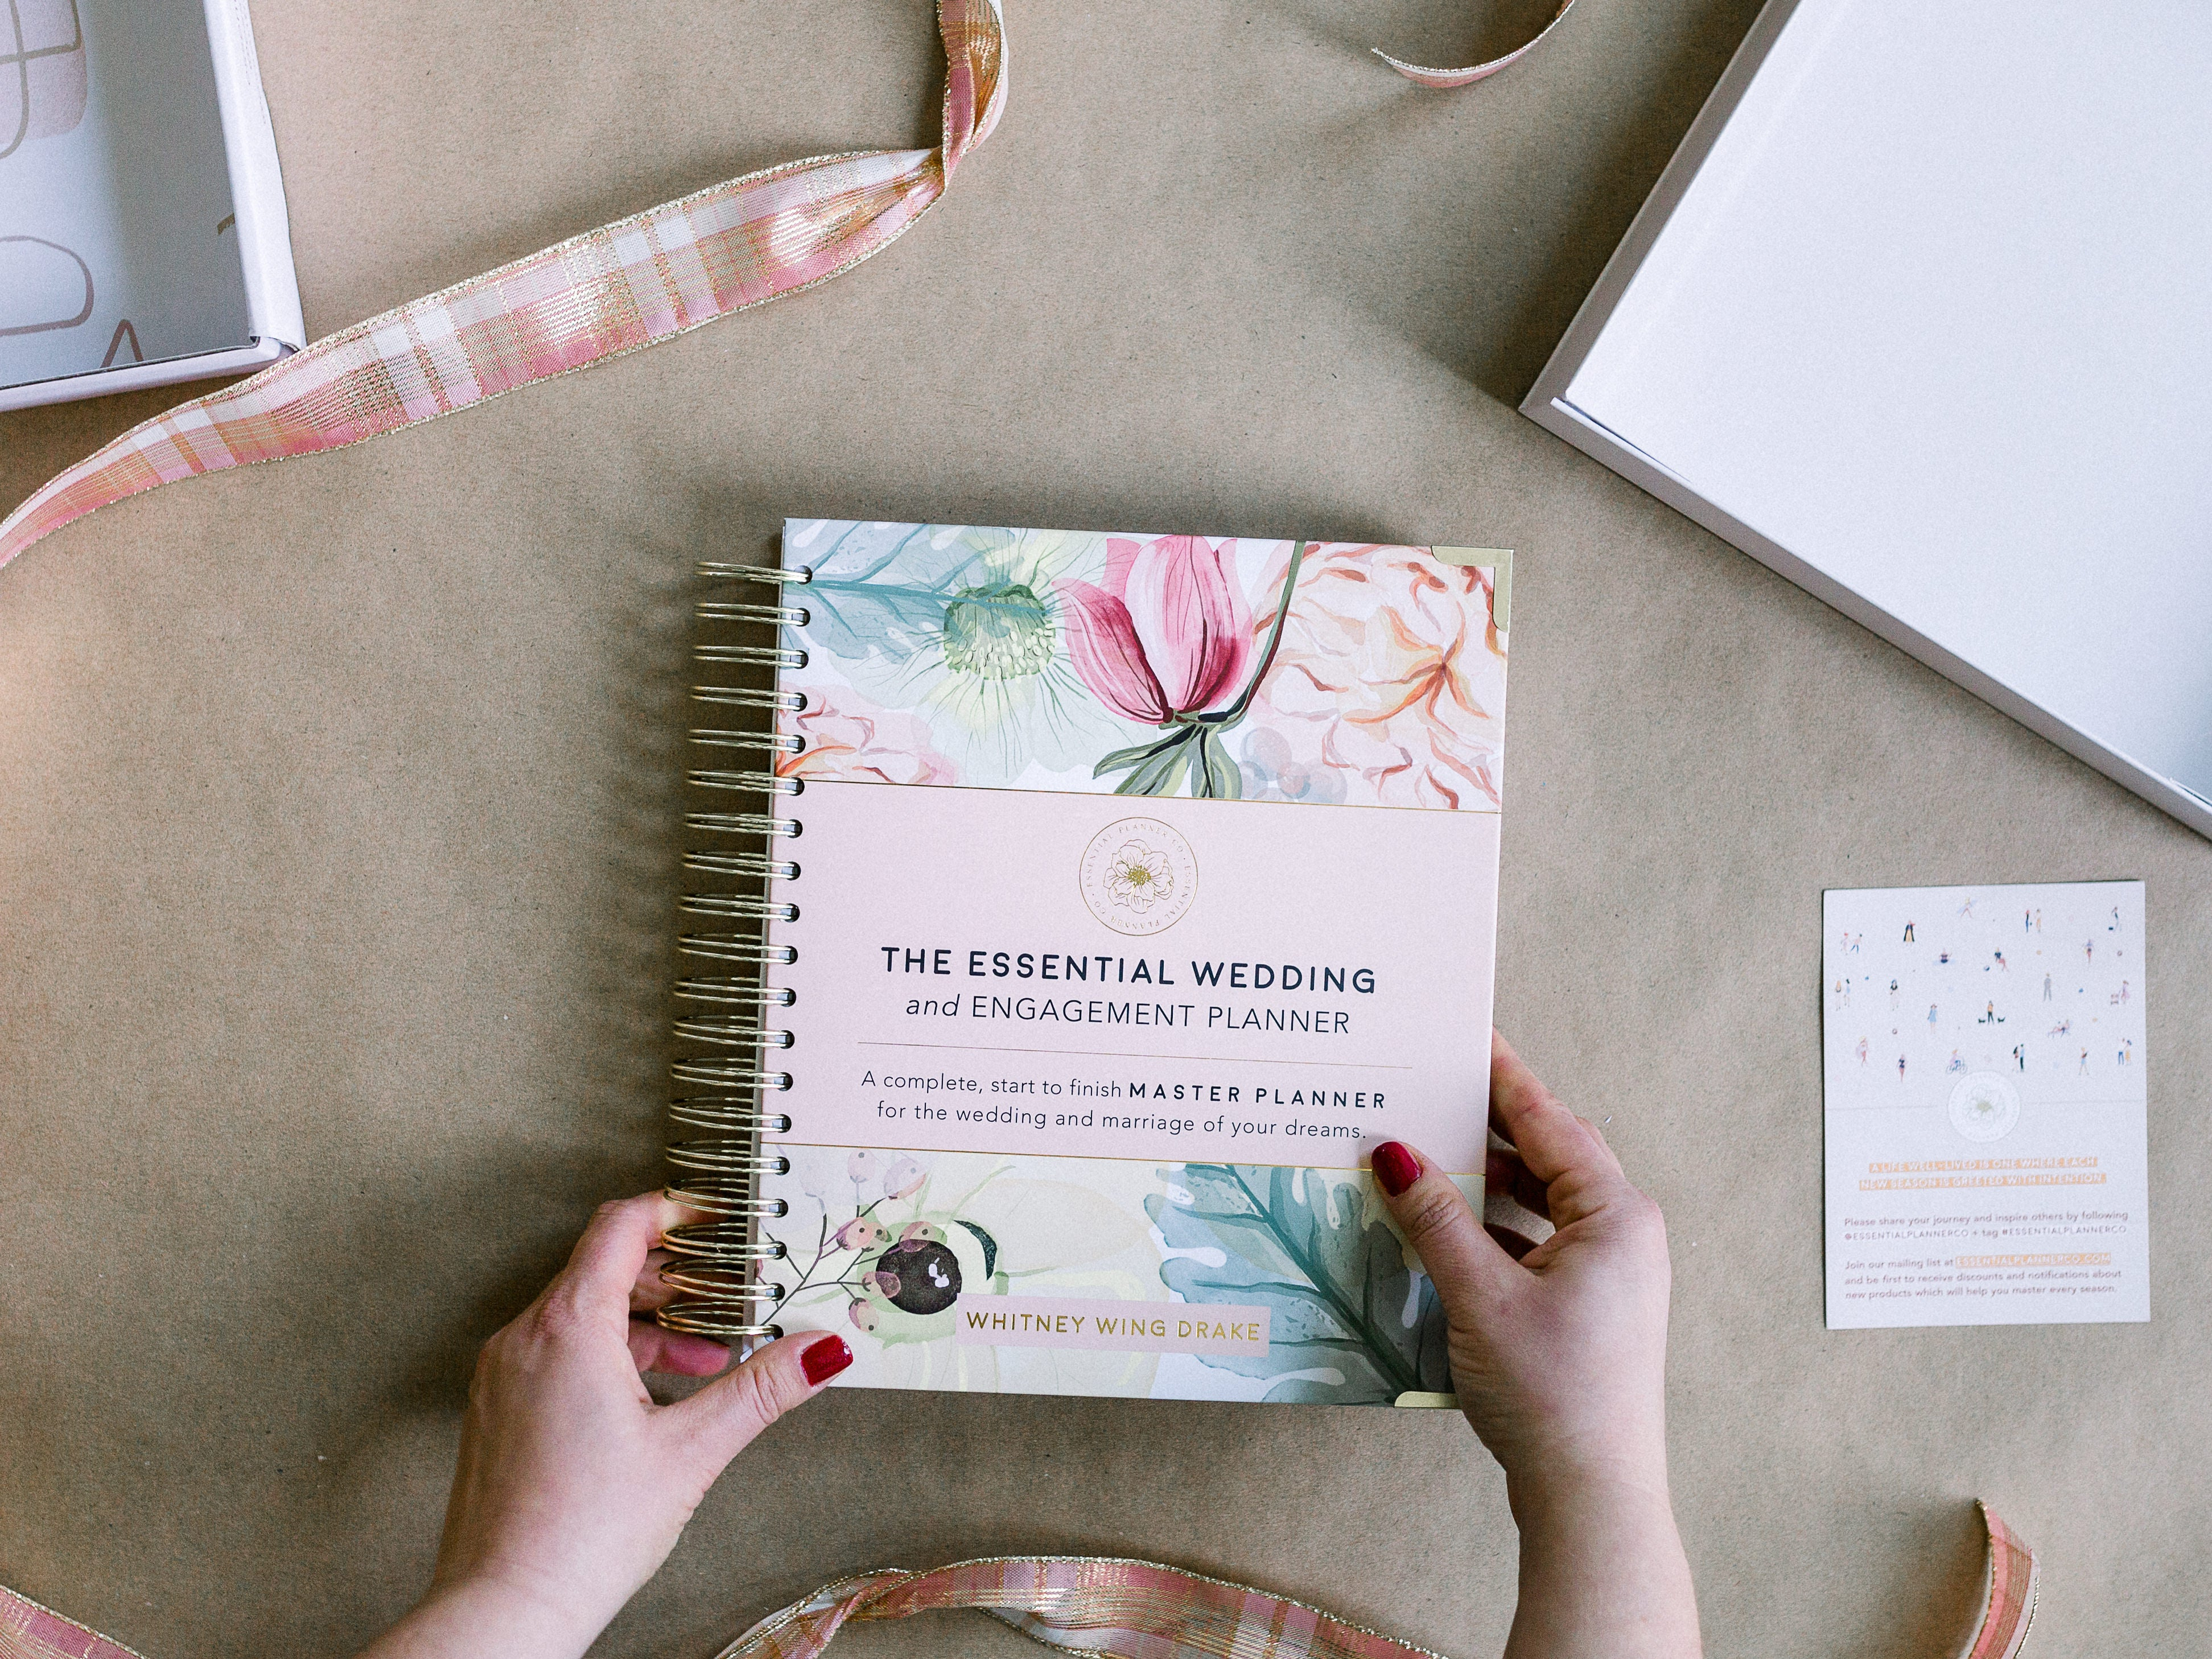 The Essential Wedding and Engagement Planner (Imperfect - Hardcover)